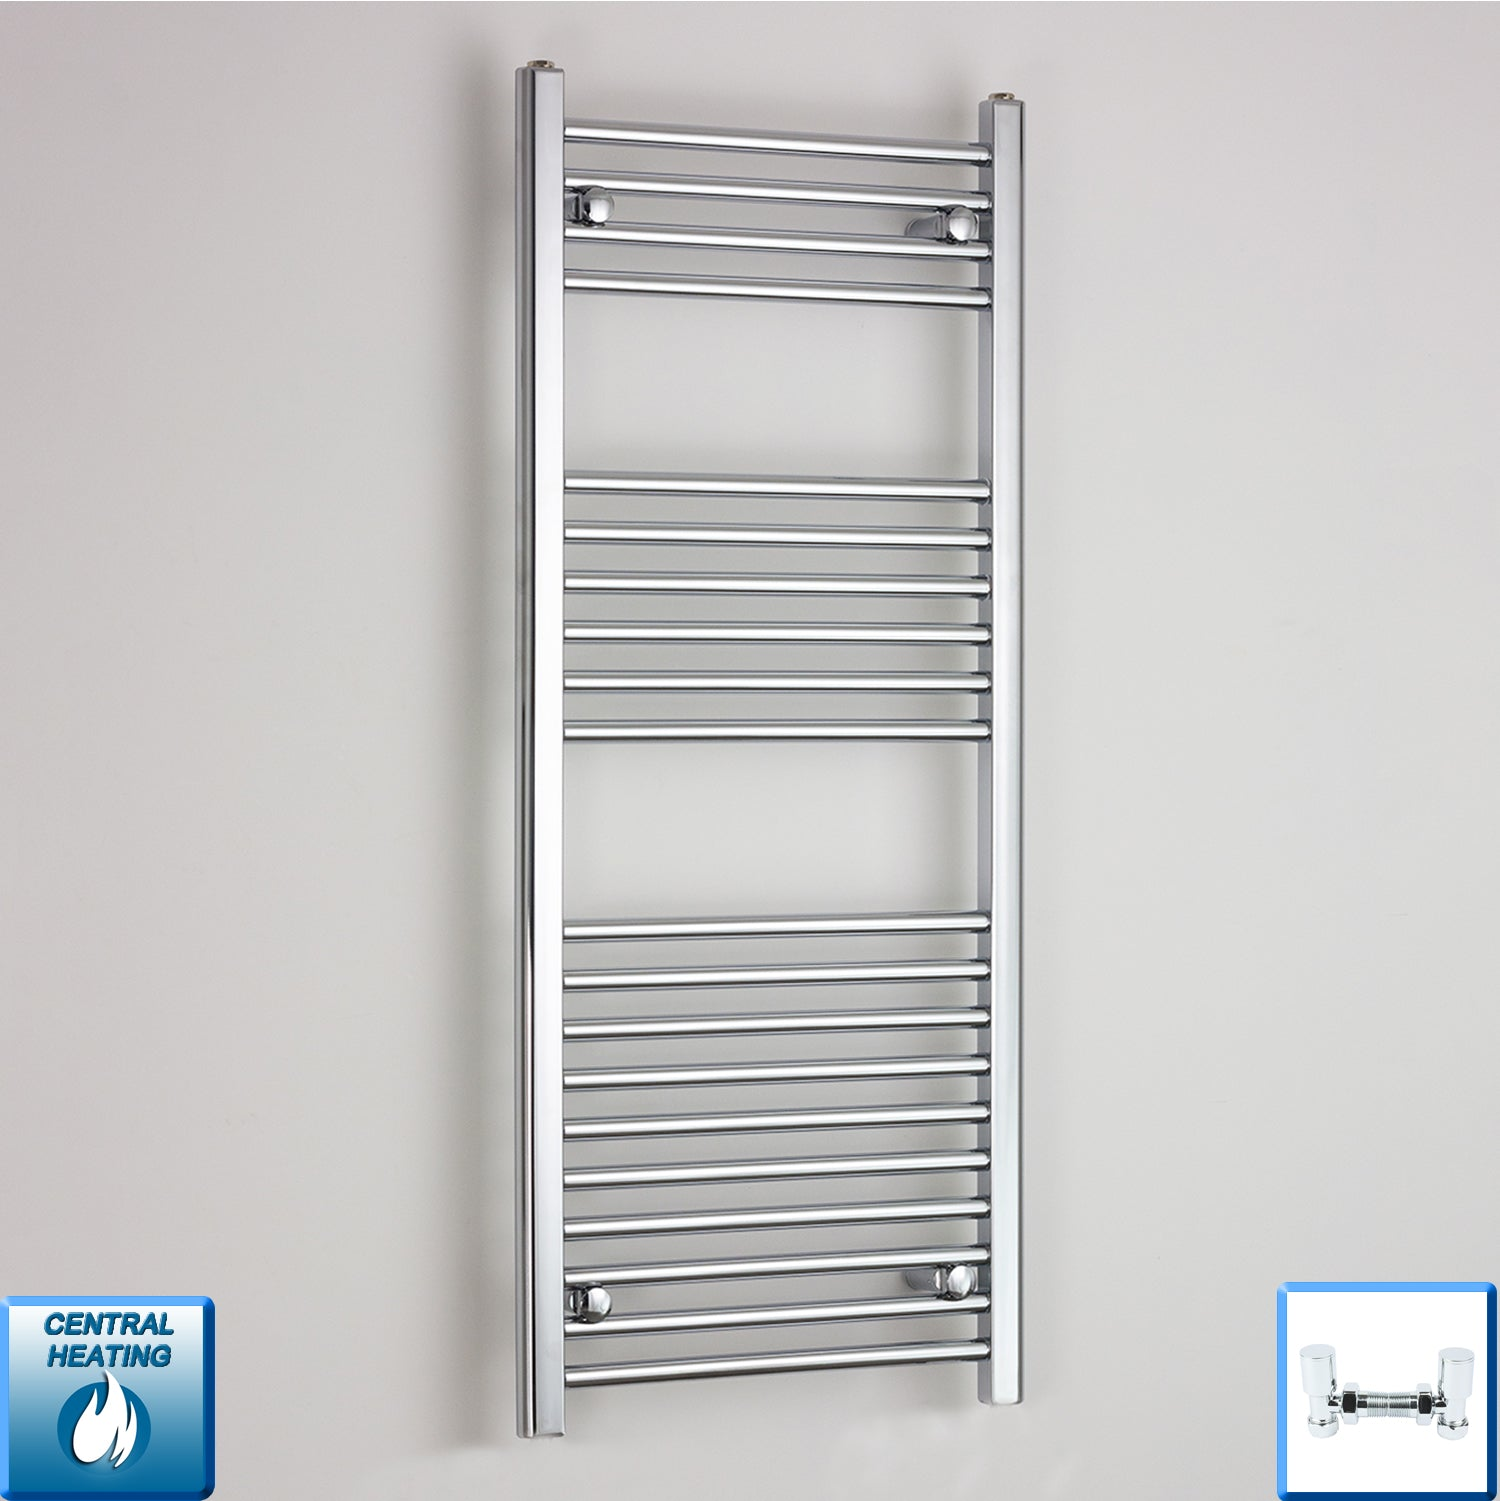 500mm Wide 1200mm High Curved Chrome Heated Towel Rail Radiator HTR,With Angled Valve